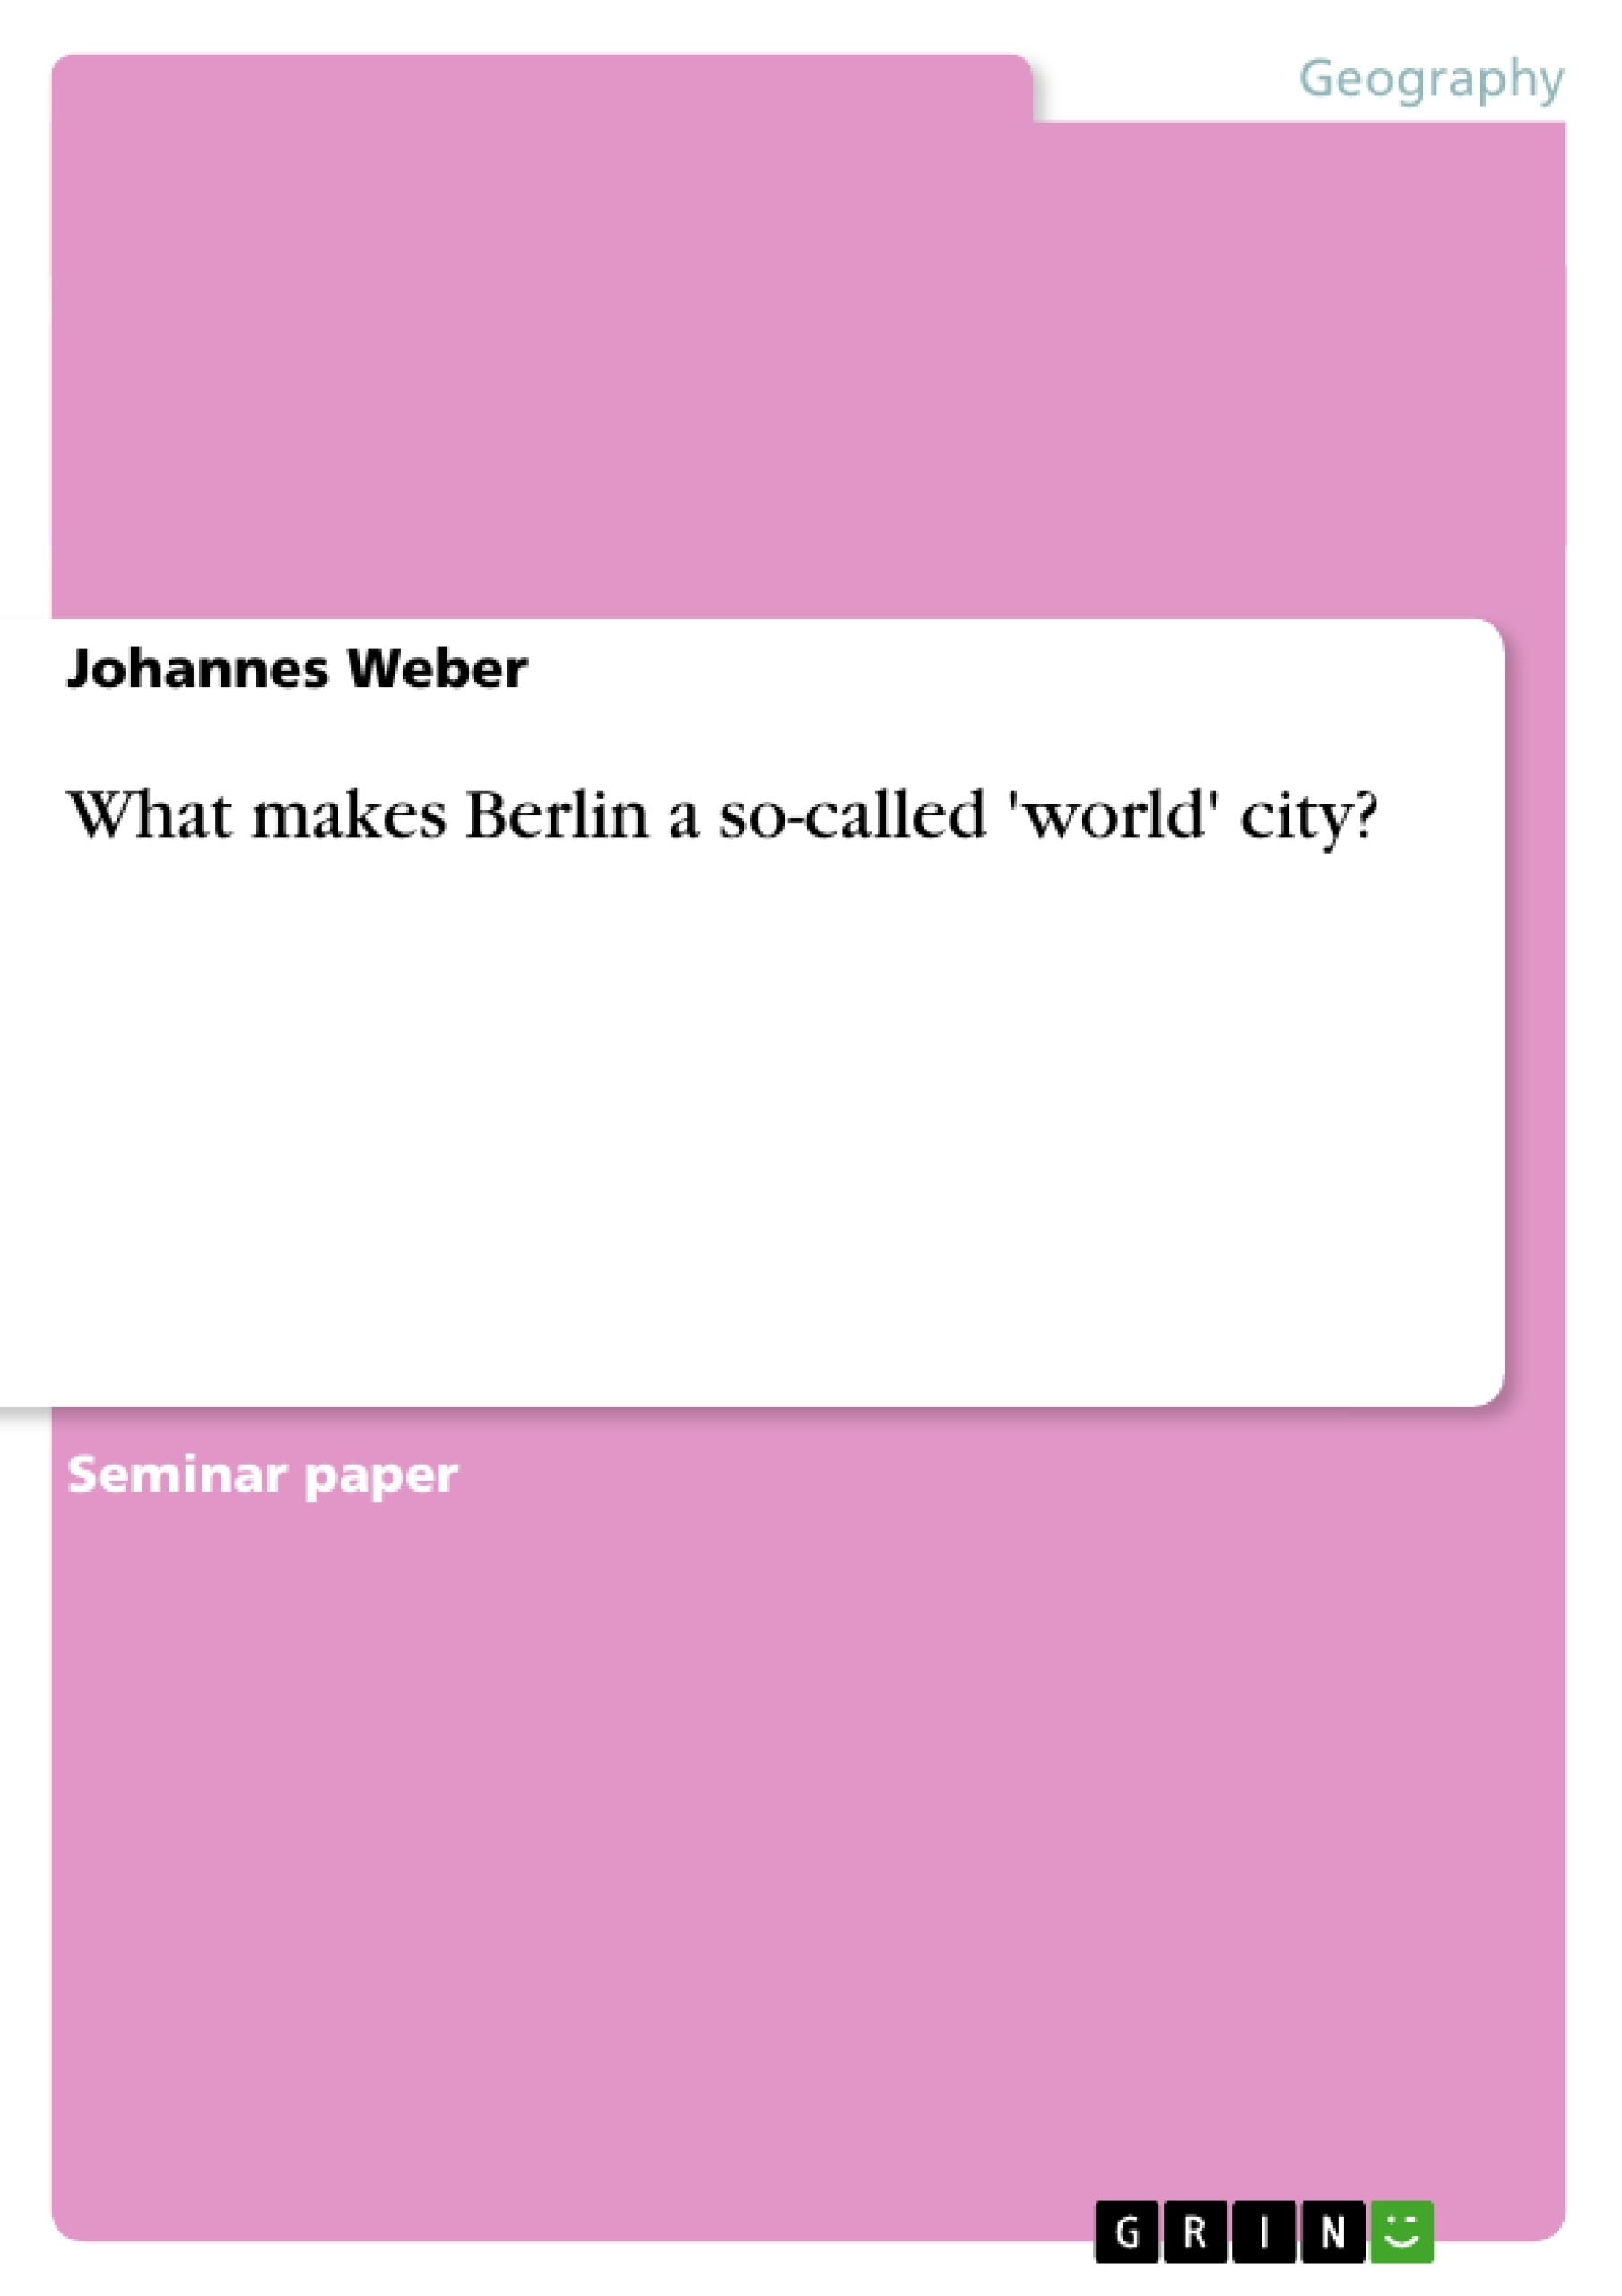 Title: What makes Berlin a so-called 'world' city?